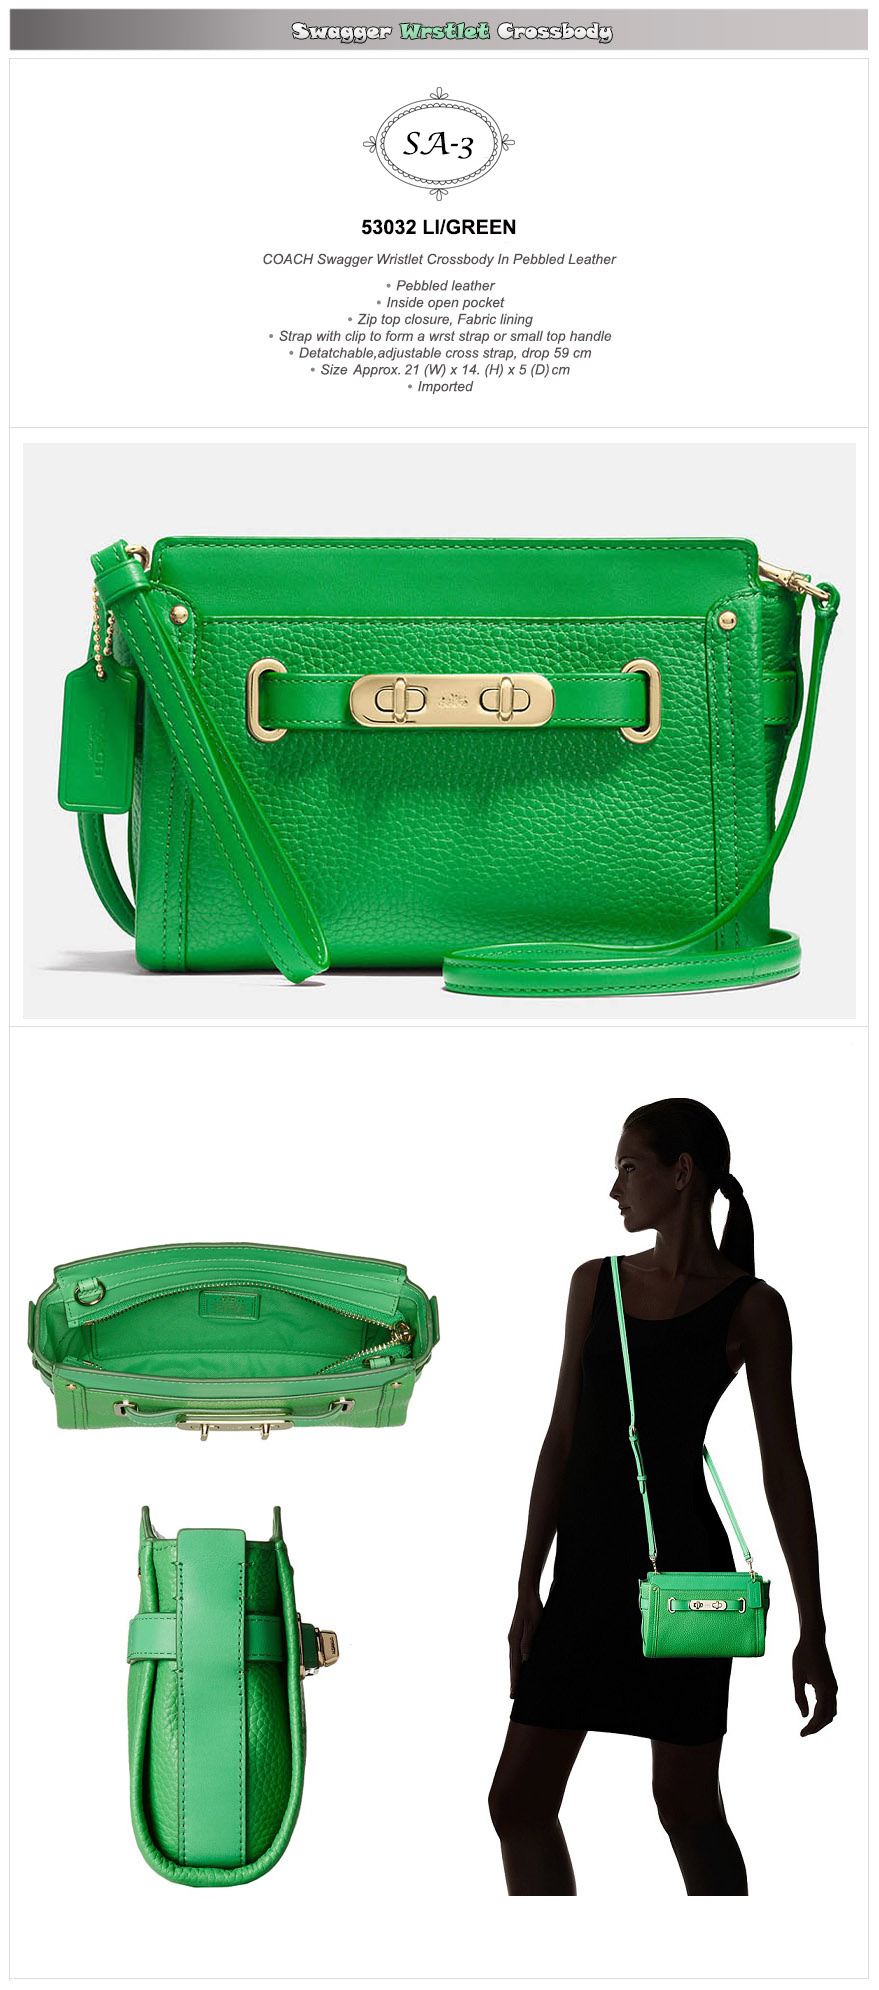 Buy Restockexclusive Sale Coach Swagger Official Genuine Products 27 Pebbled Green Go And Save Your Money Up